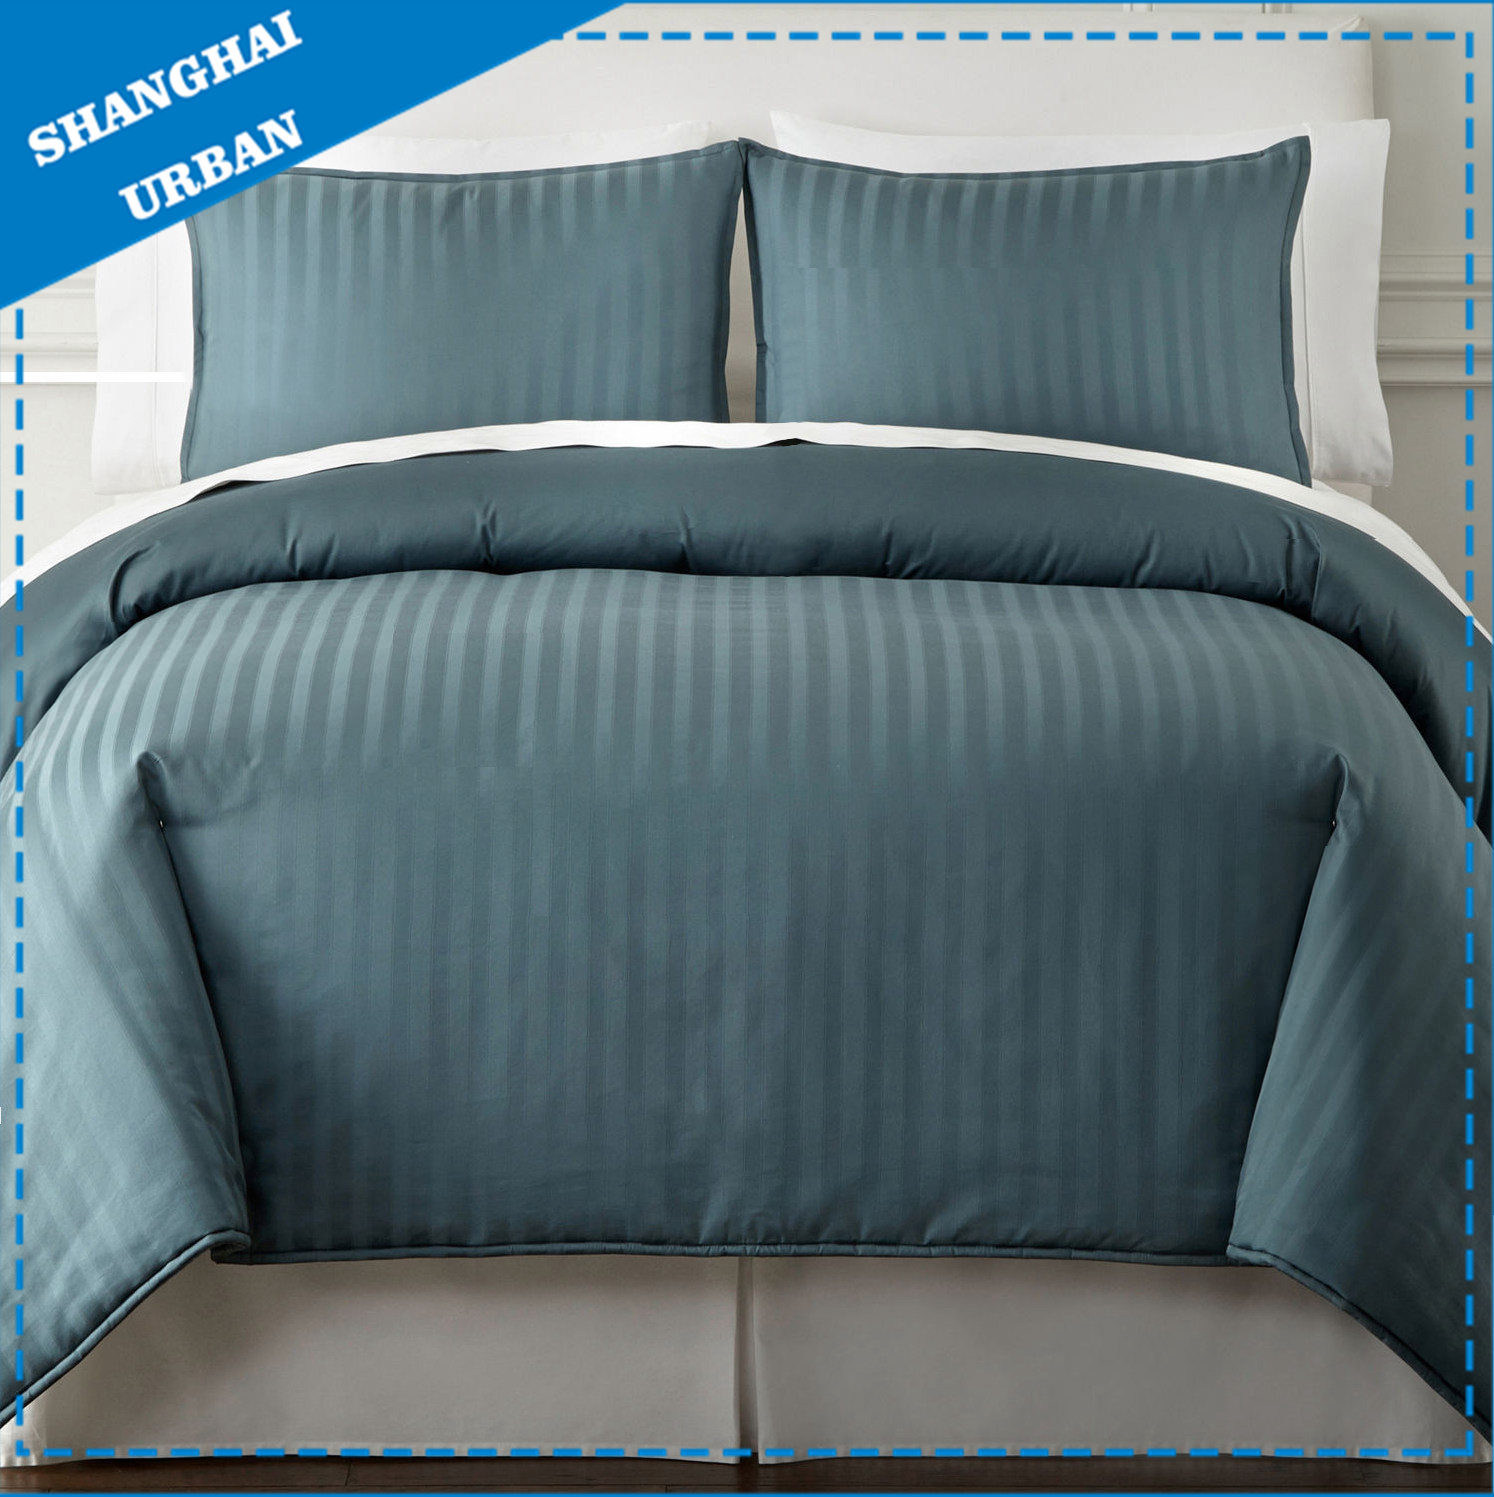 refresh complement than hill a i story bedding layered between sam the rather scalloped to cover flat quilt sheets lane duvet white sheet and scallop